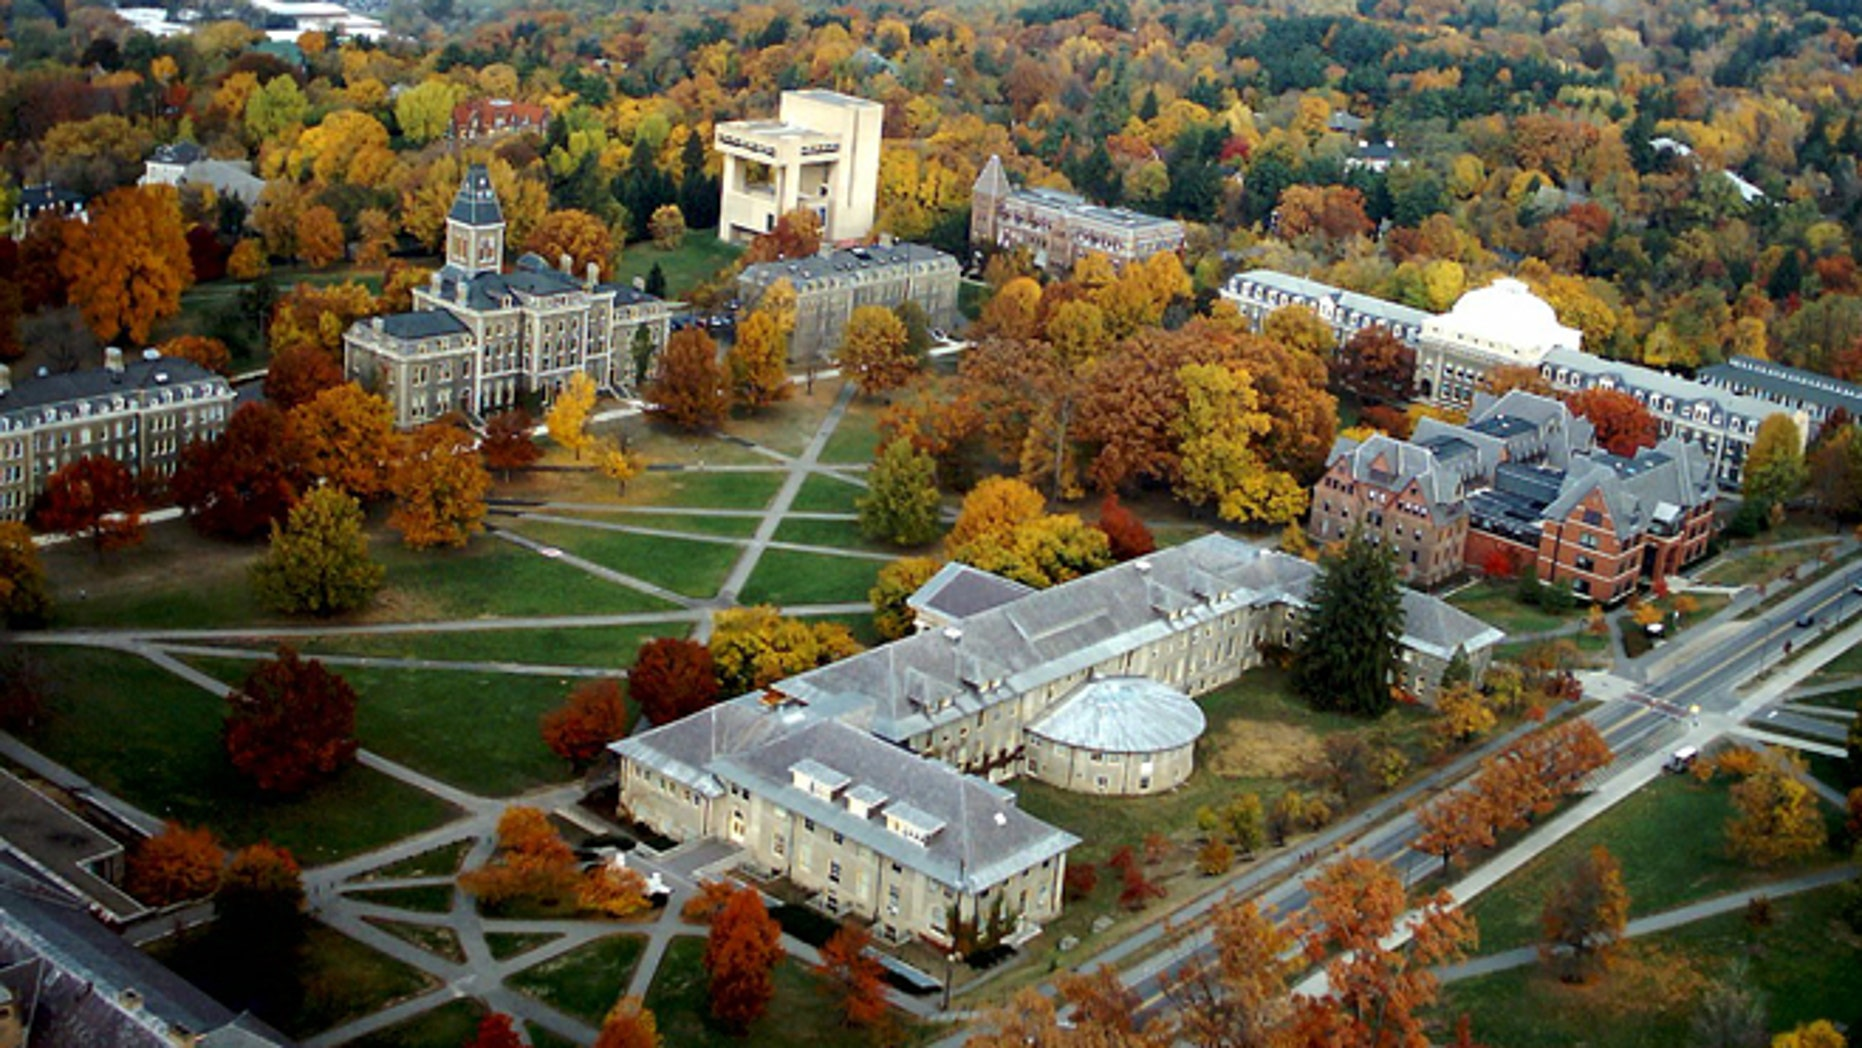 Cornell University is shown (Credit: Cornell University)